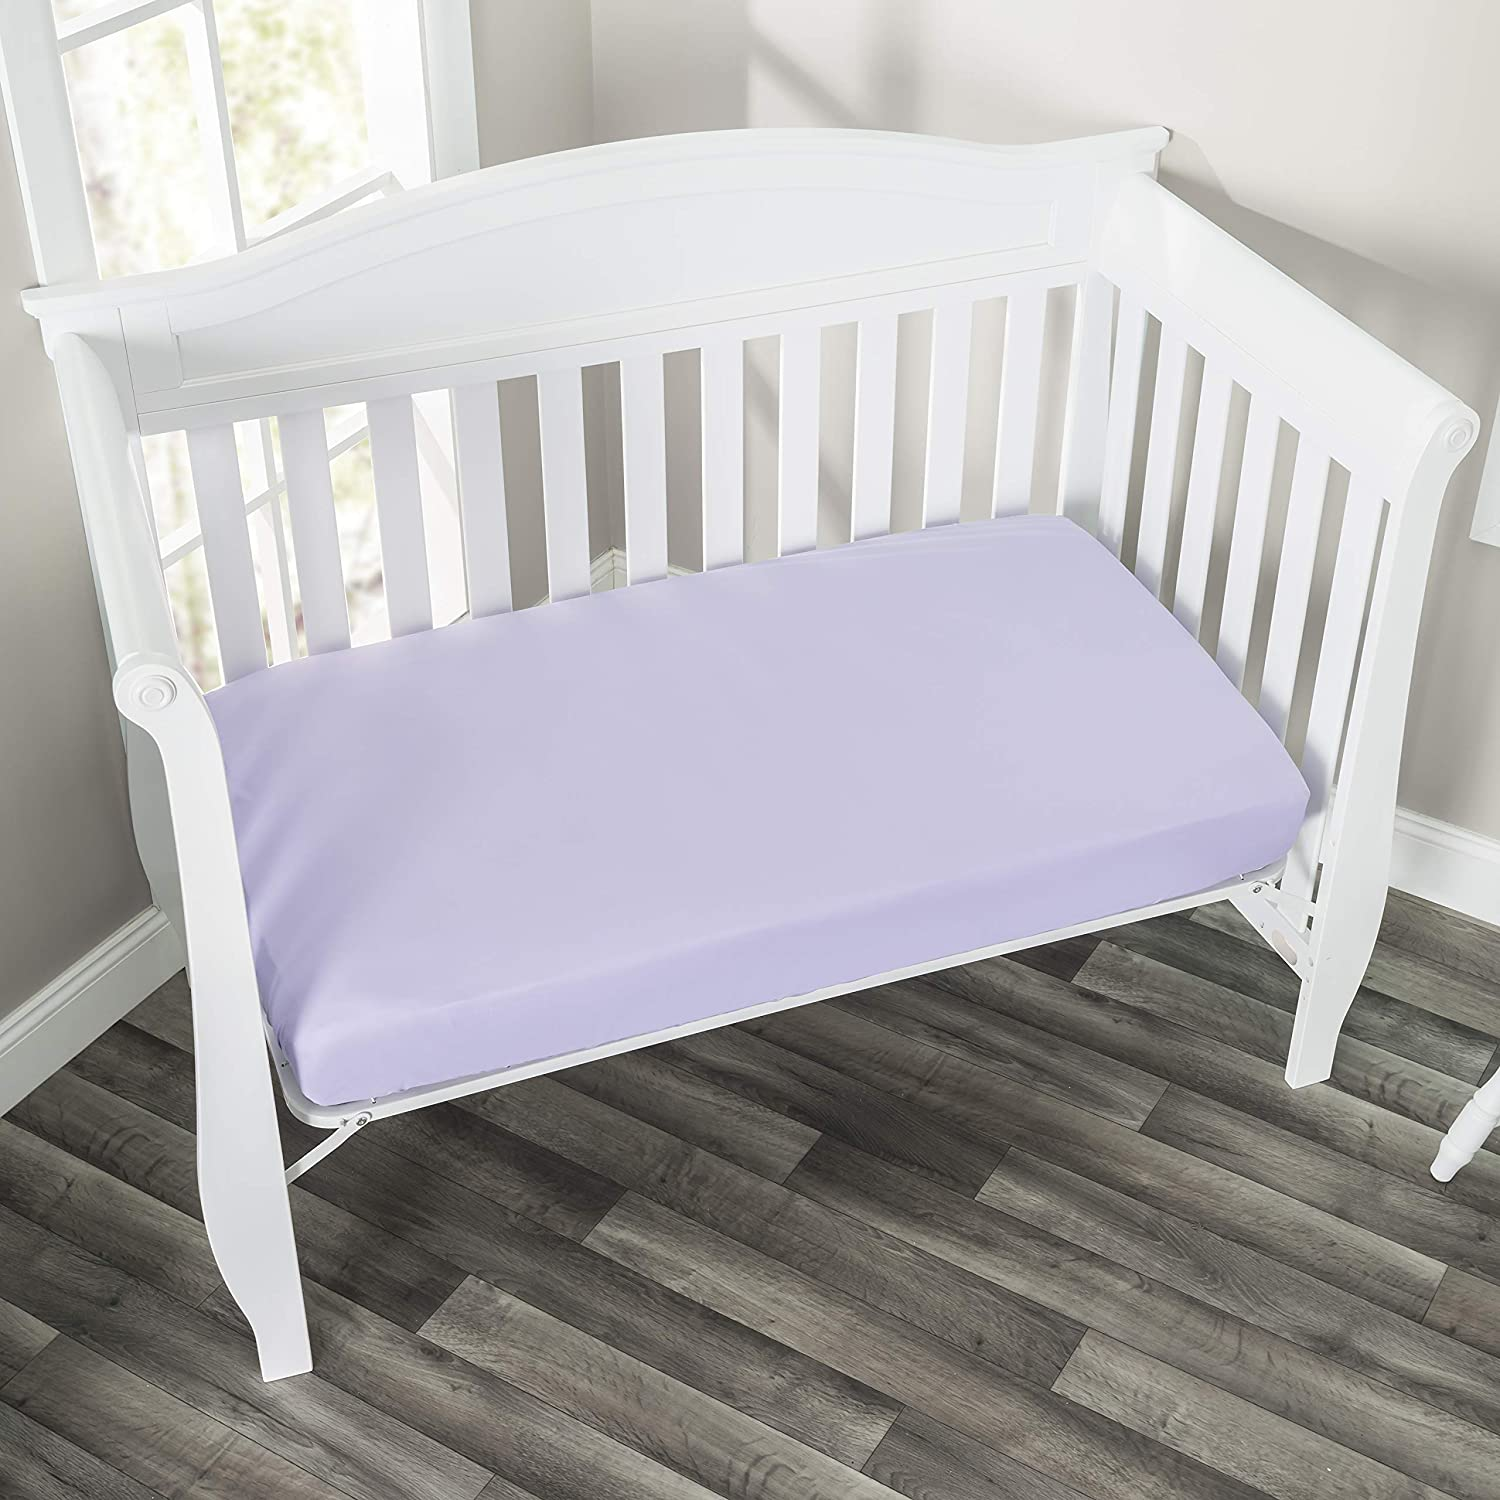 EVERYDAY KIDS Fitted Crib Sheet, 100% Soft Microfiber, Breathable and Hypoallergenic Baby Sheet, Fits Standard Size Crib Mattress 28in x 52in, Purple Nursery Sheet